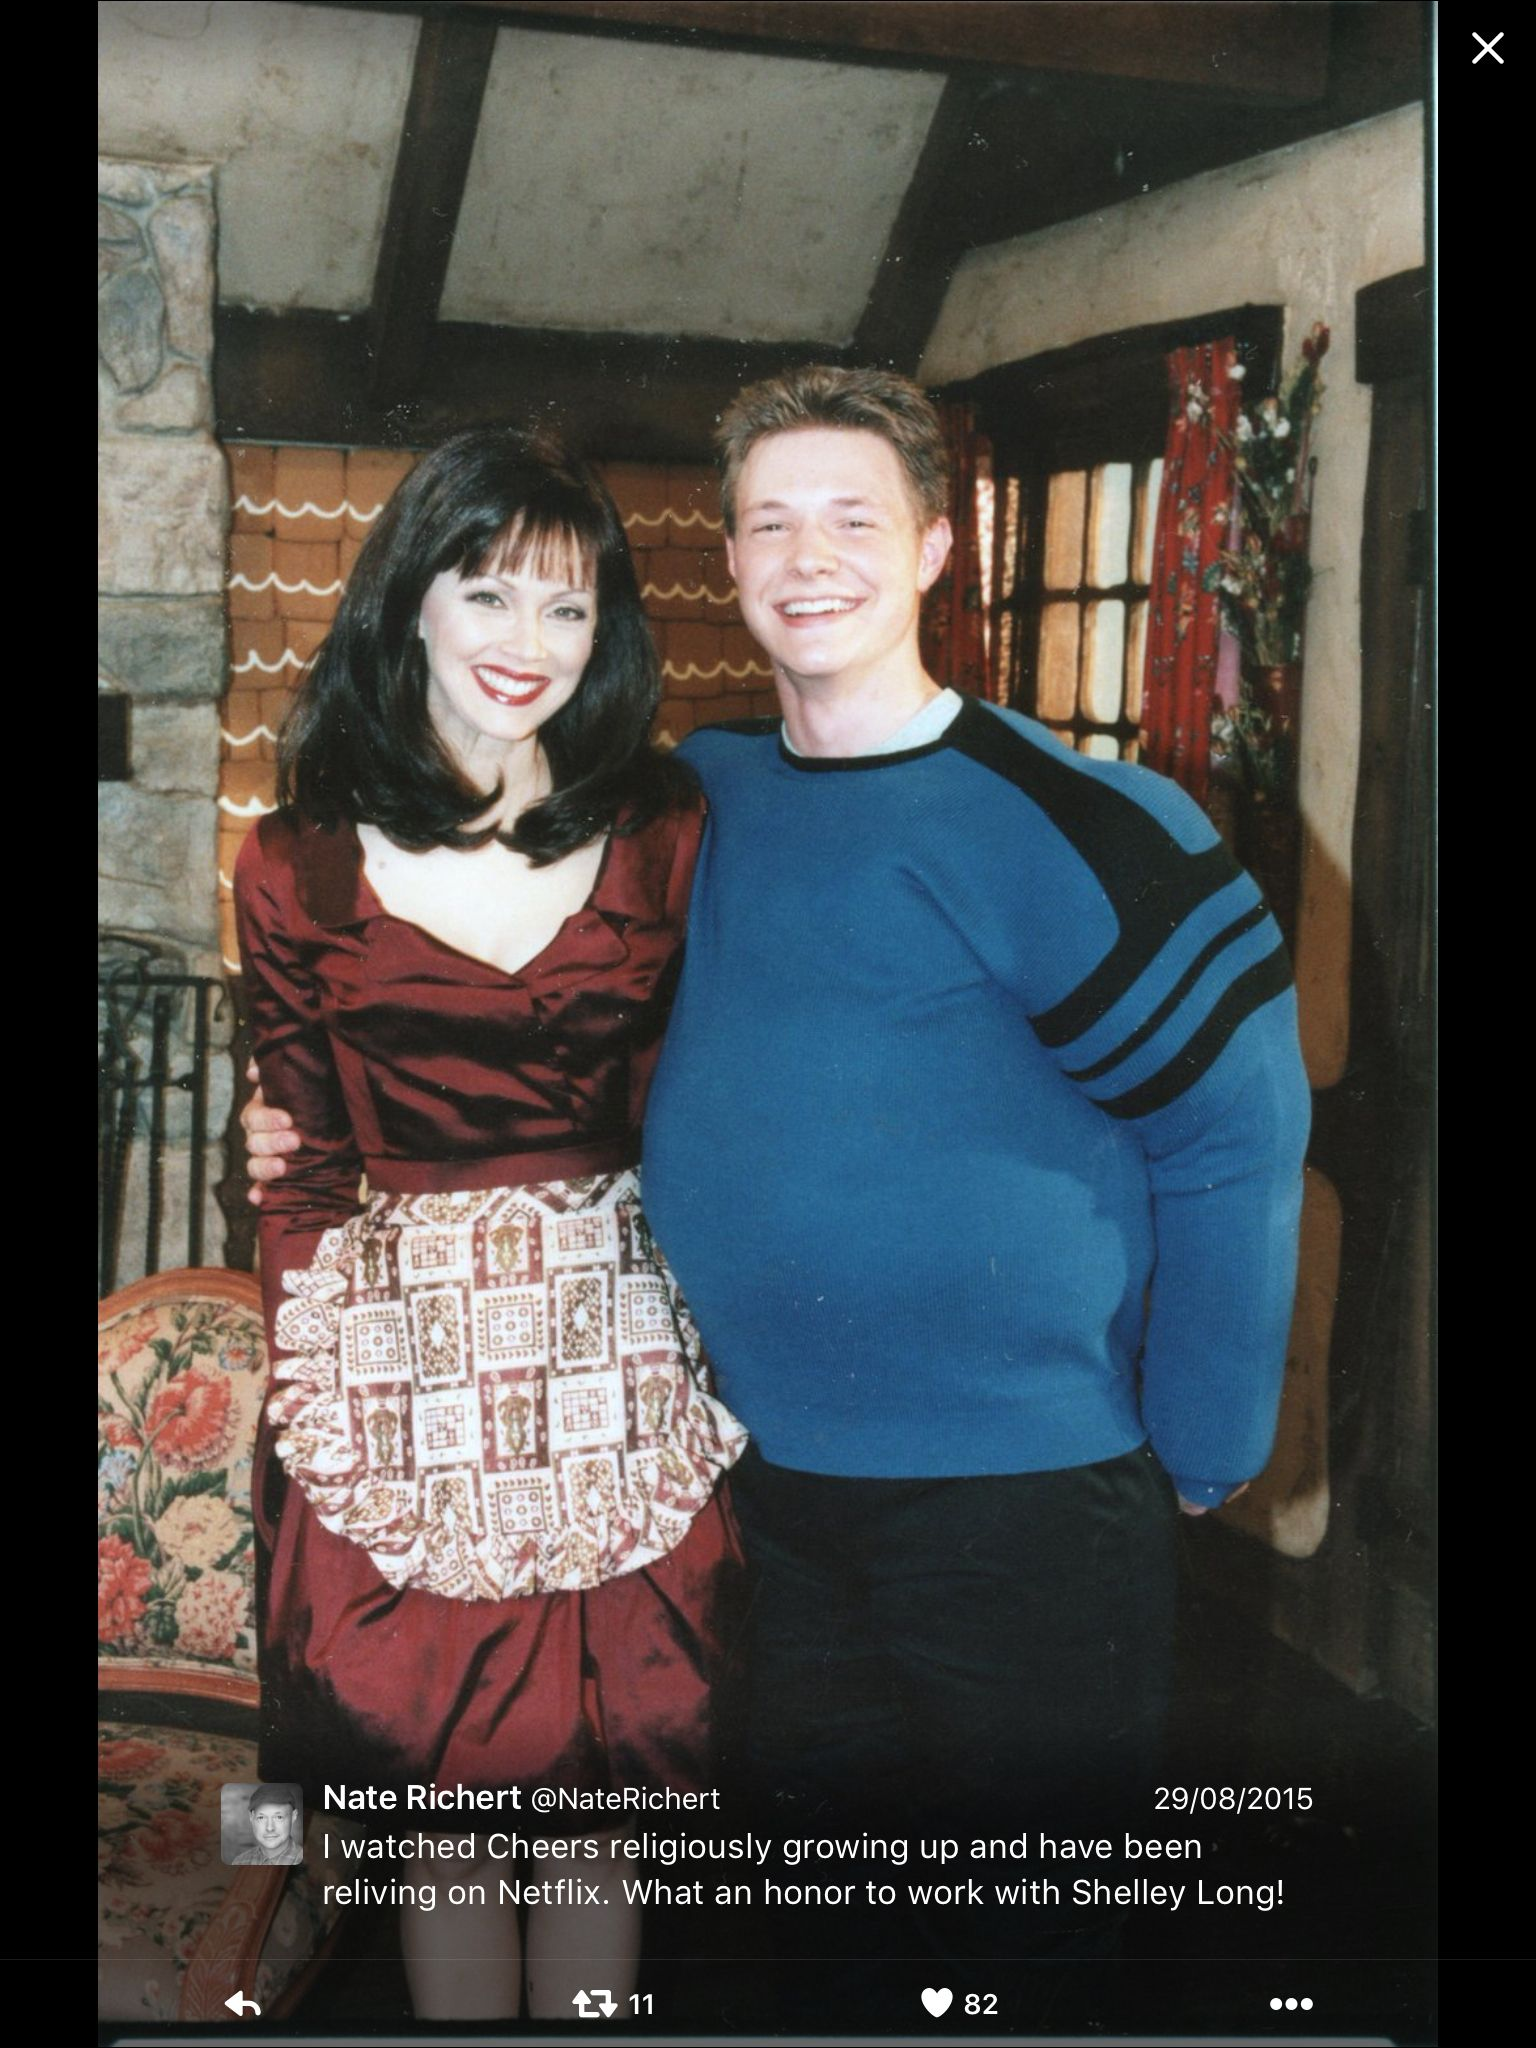 Nate Richert Sabrina Witch Sabrina Spellman Sabrina Official twitter for the guy from that show who looks sooo old now. nate richert sabrina witch sabrina